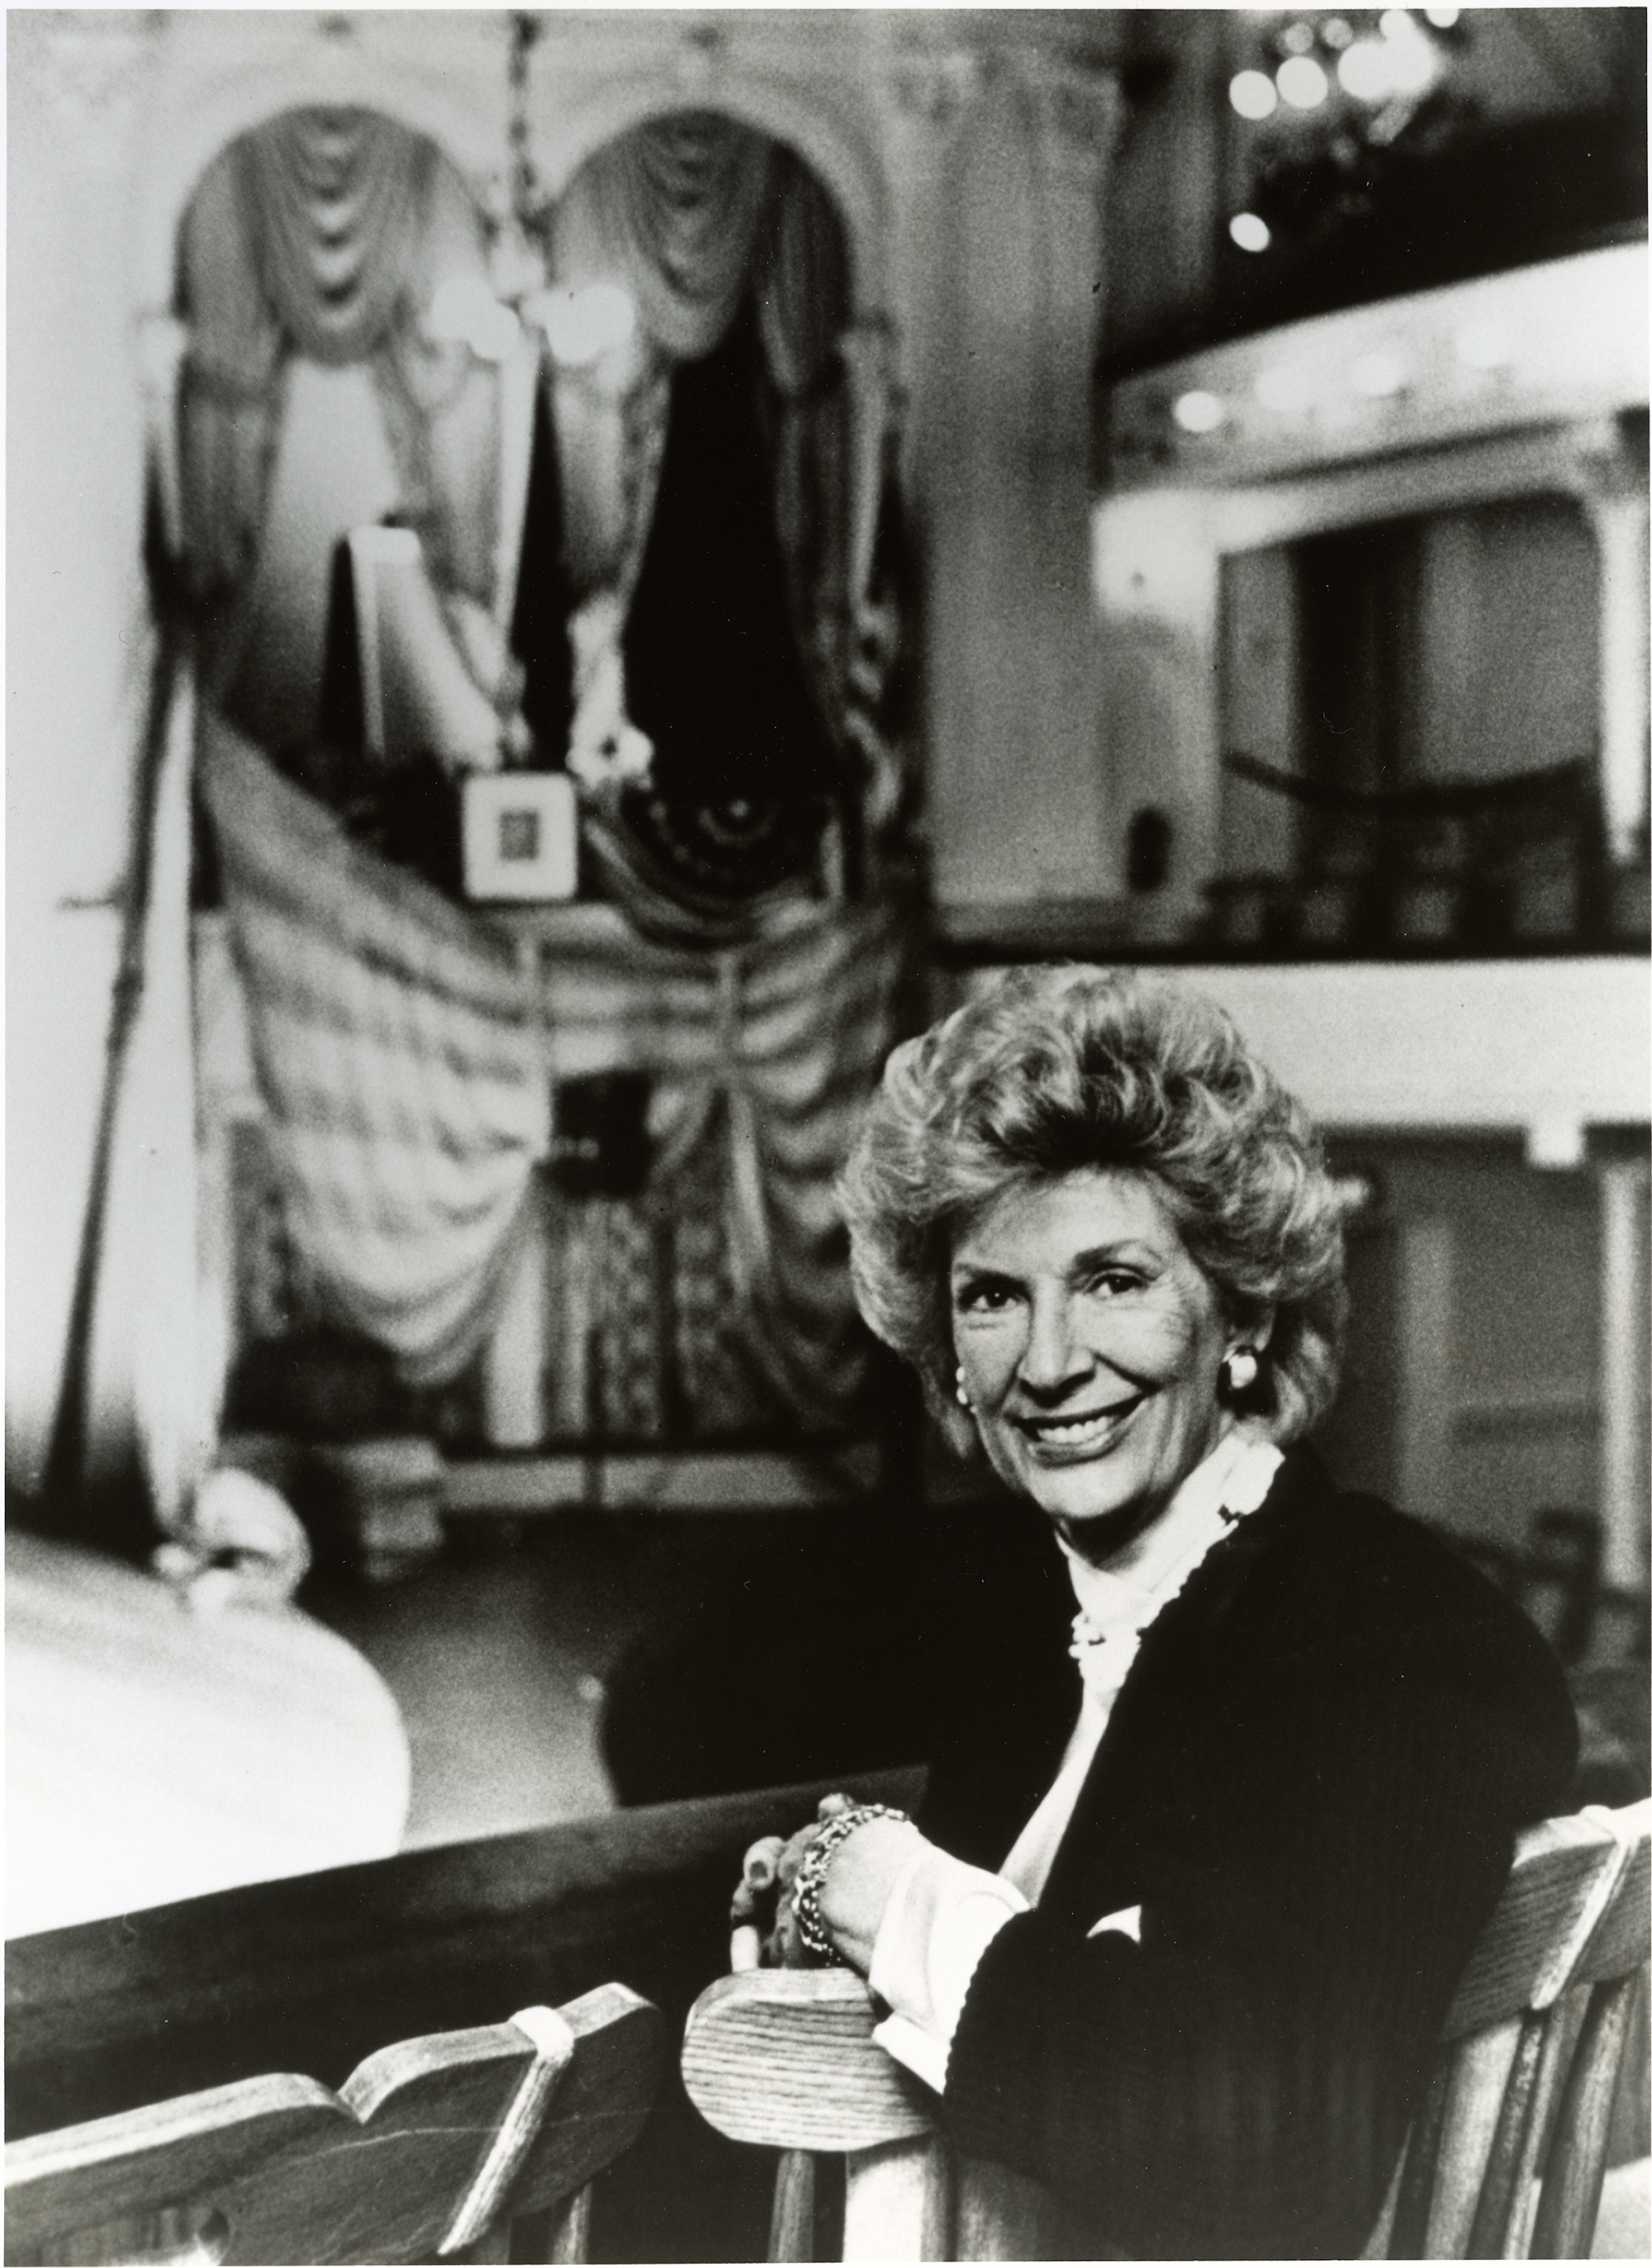 Frankie Hewitt (founder of Ford's Theatre Society) sits inside of Ford's Theatre with the Presidential Box positioned behind her. Her hair is short and permed. She wears a black tailored jacket over a white blouse with a high neck.